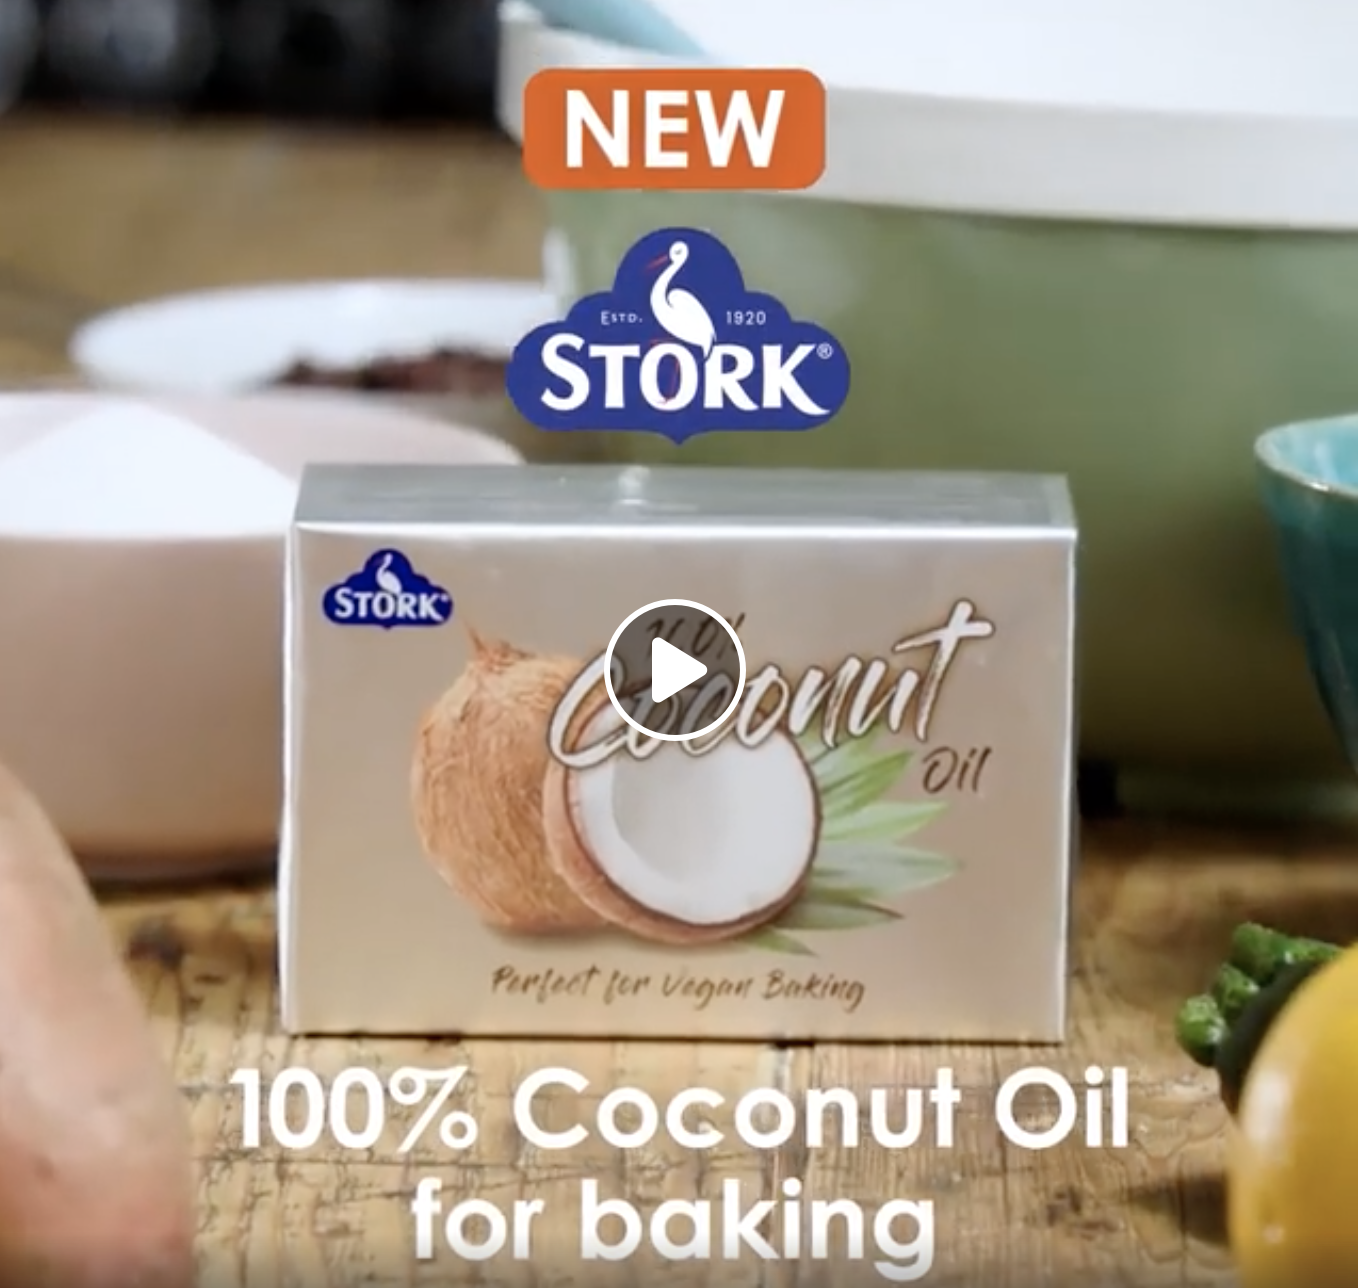 STORK COCONUT OIL - Video Editor and colourist for Stork's launch of their new coconut oil product.